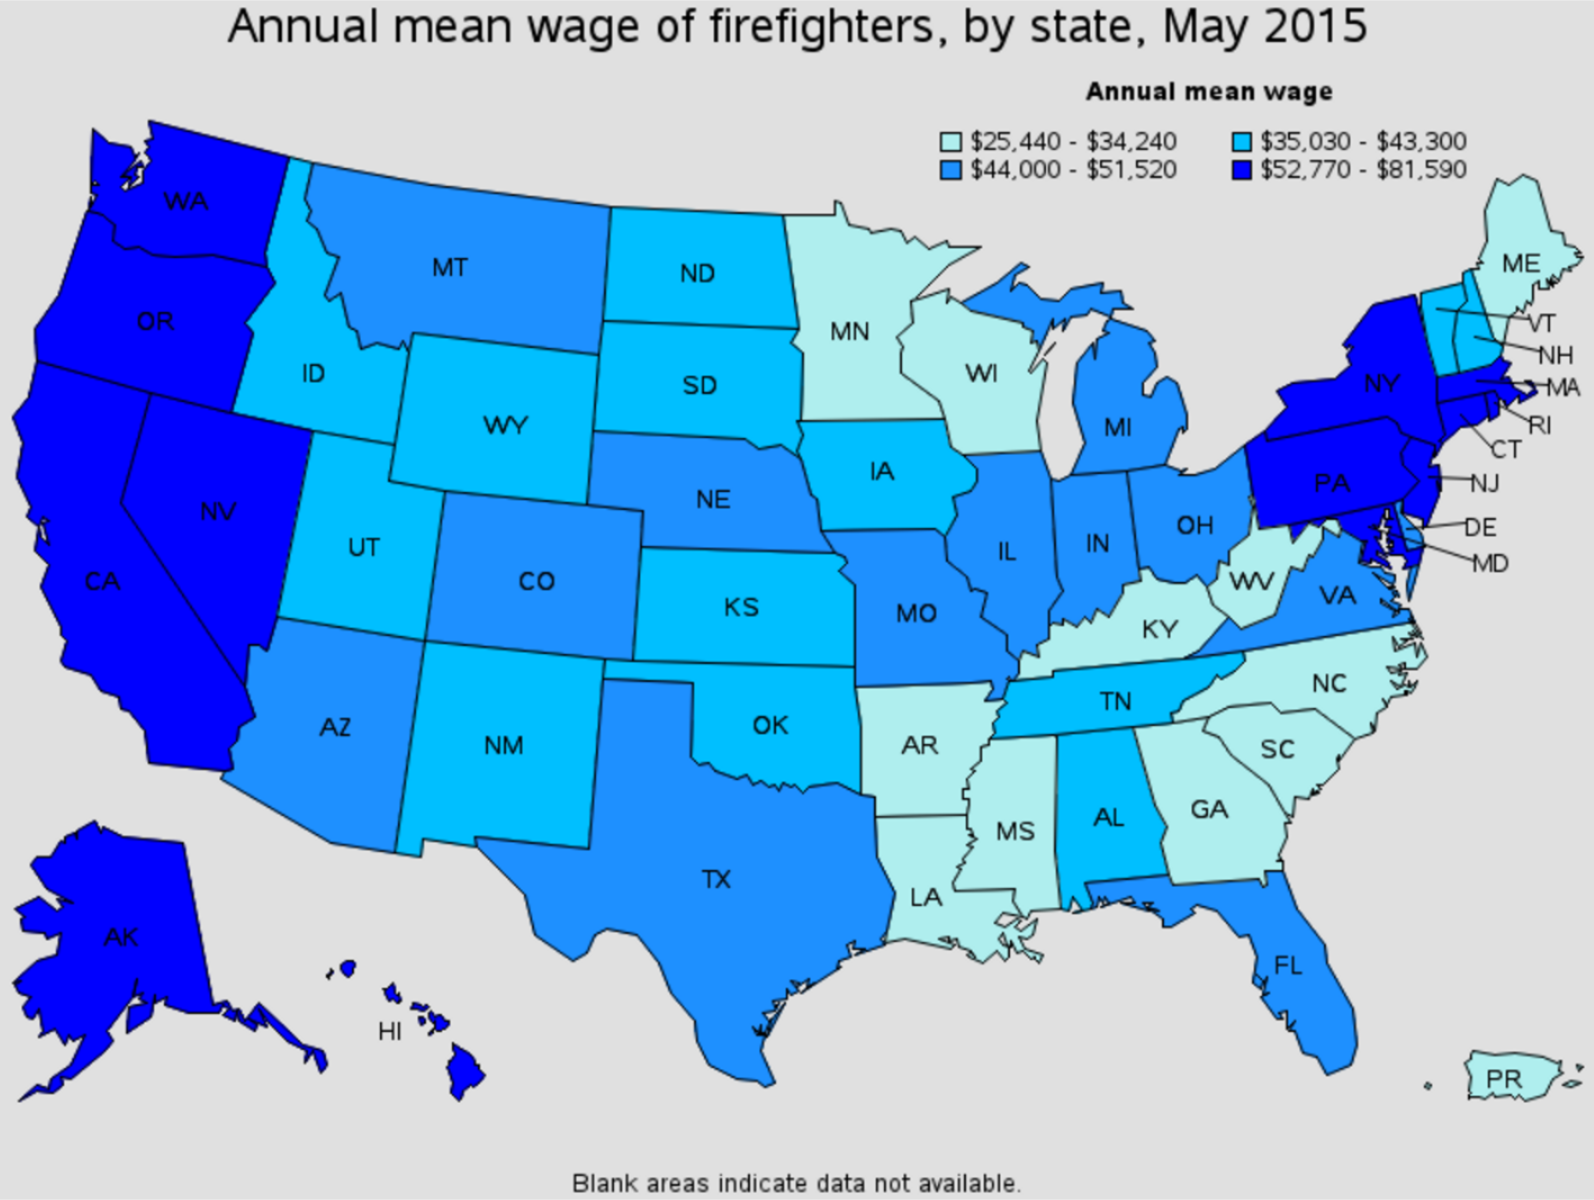 firefighter average salary by state Woodlawn Virginia